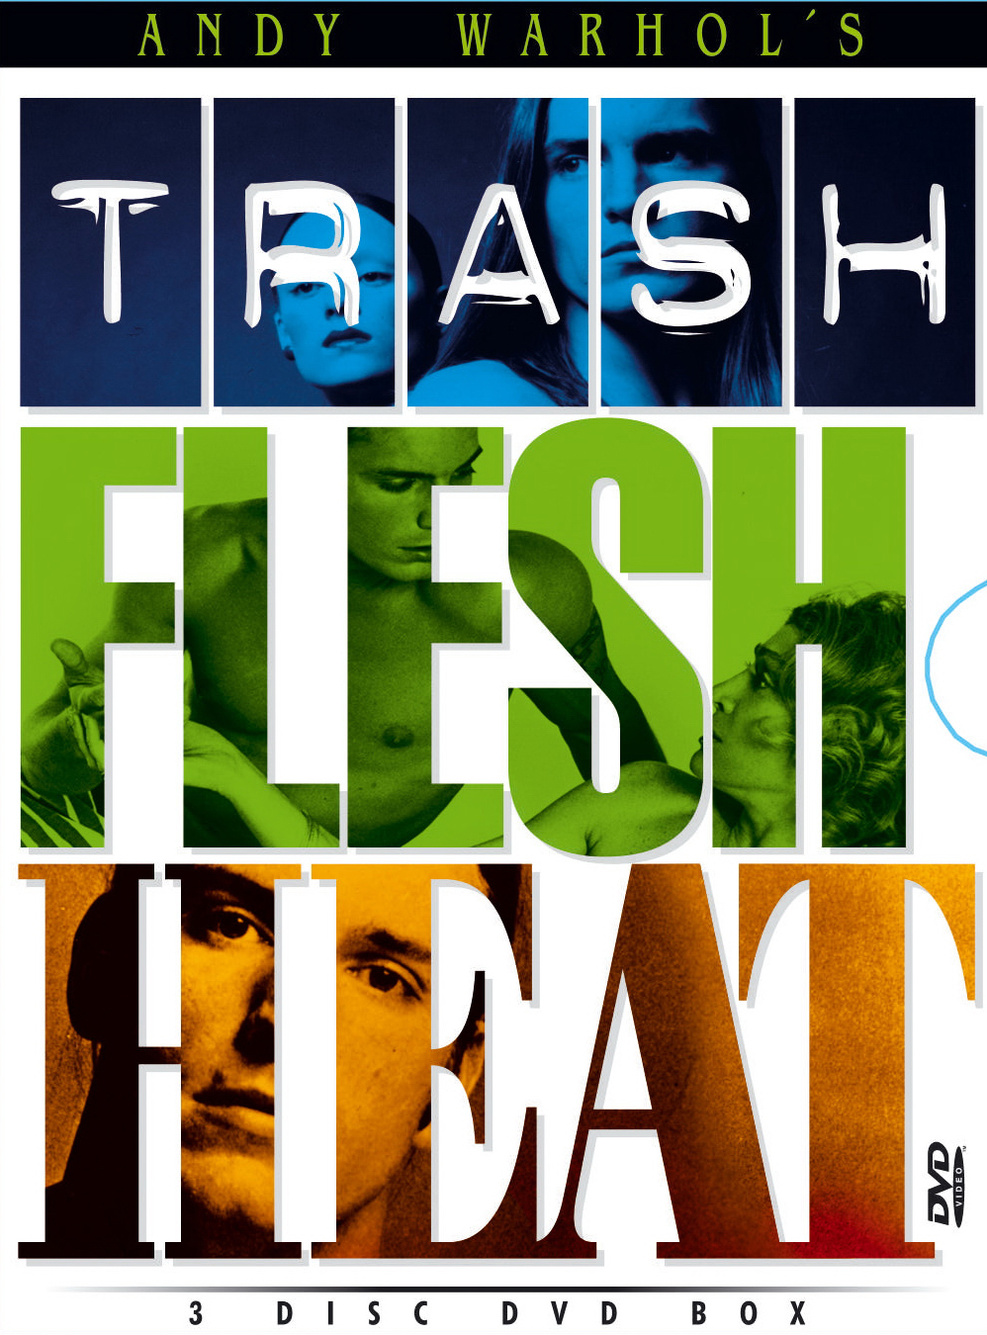 Flesh/Trash/Heat Warhol 3 Film Digi Box